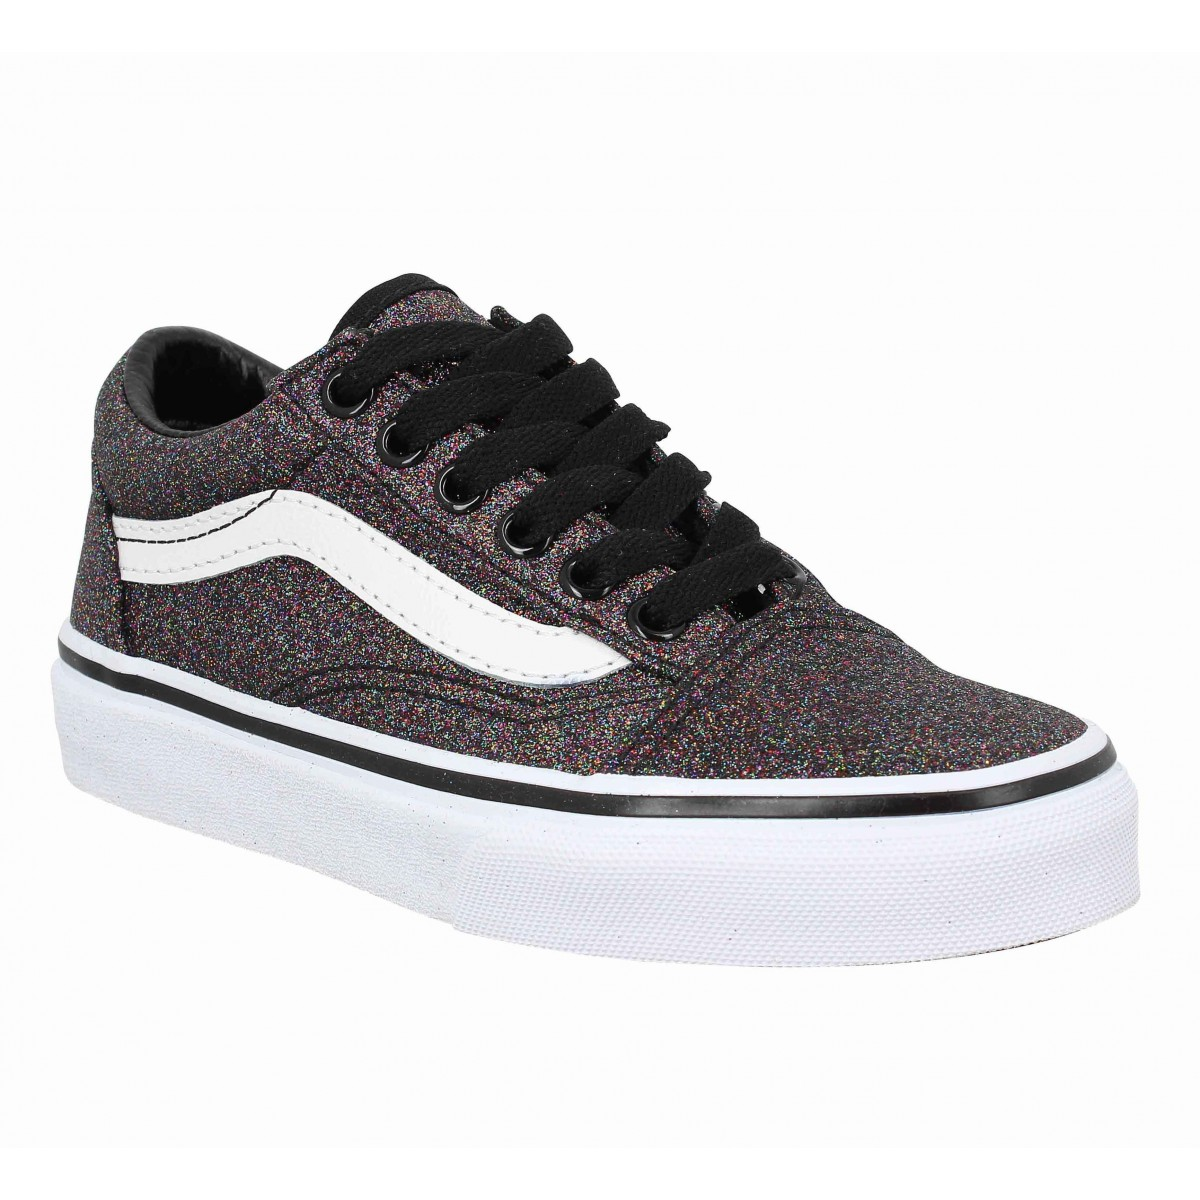 Baskets VANS Old Skool glitter Enfant Noir